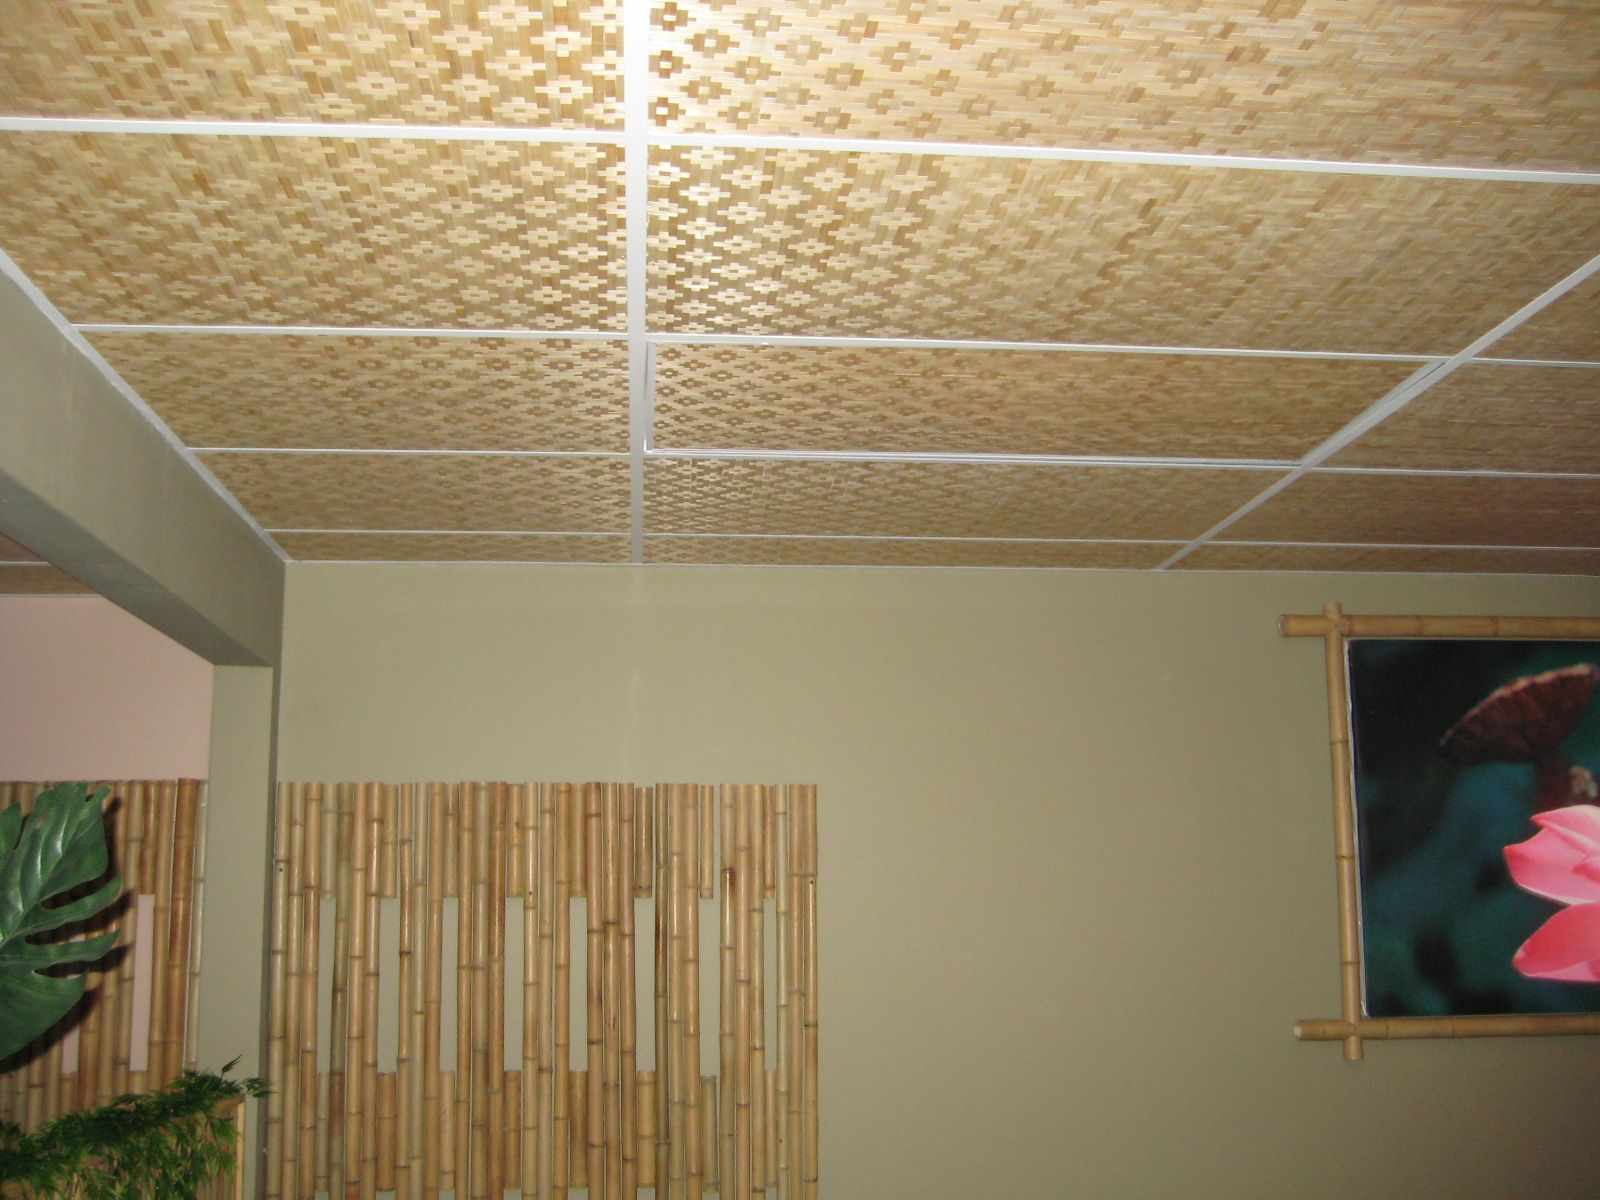 Interesting Bamboo Wall Panels For You: Amazing Bamboo Wall Panels In  Living Room With Grey Colored Wall Which Brown Ceiling With Straw Mate.